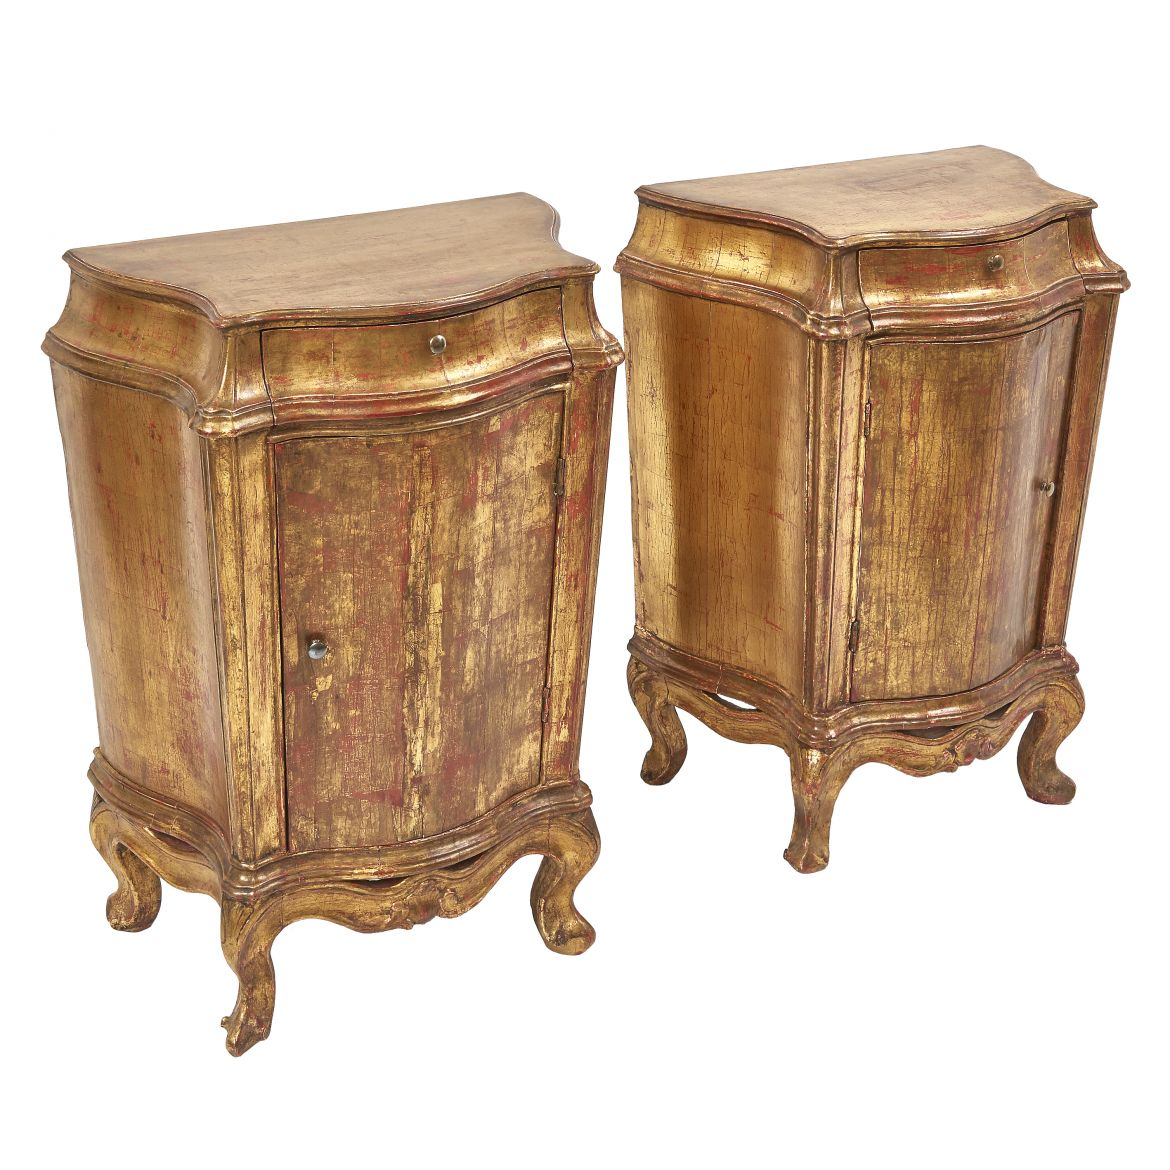 Venetian Giltwood Roccoco cabinets